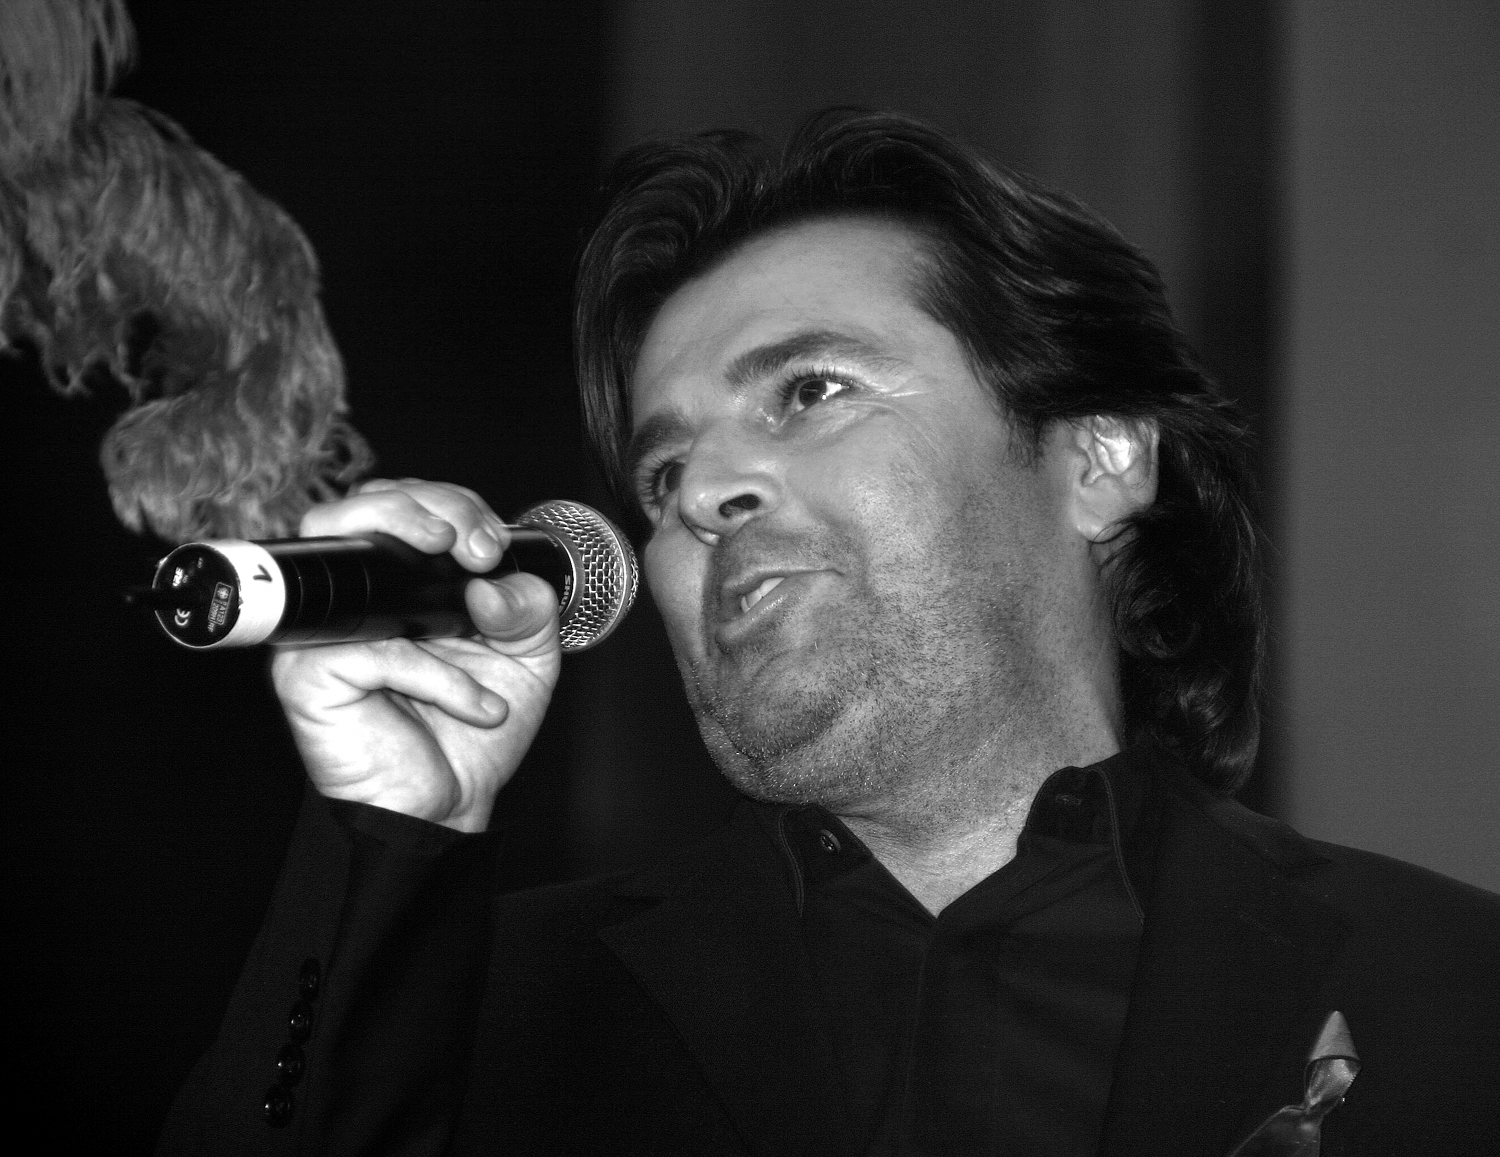 Thomas Anders Concert File:thomas Anders 20071130